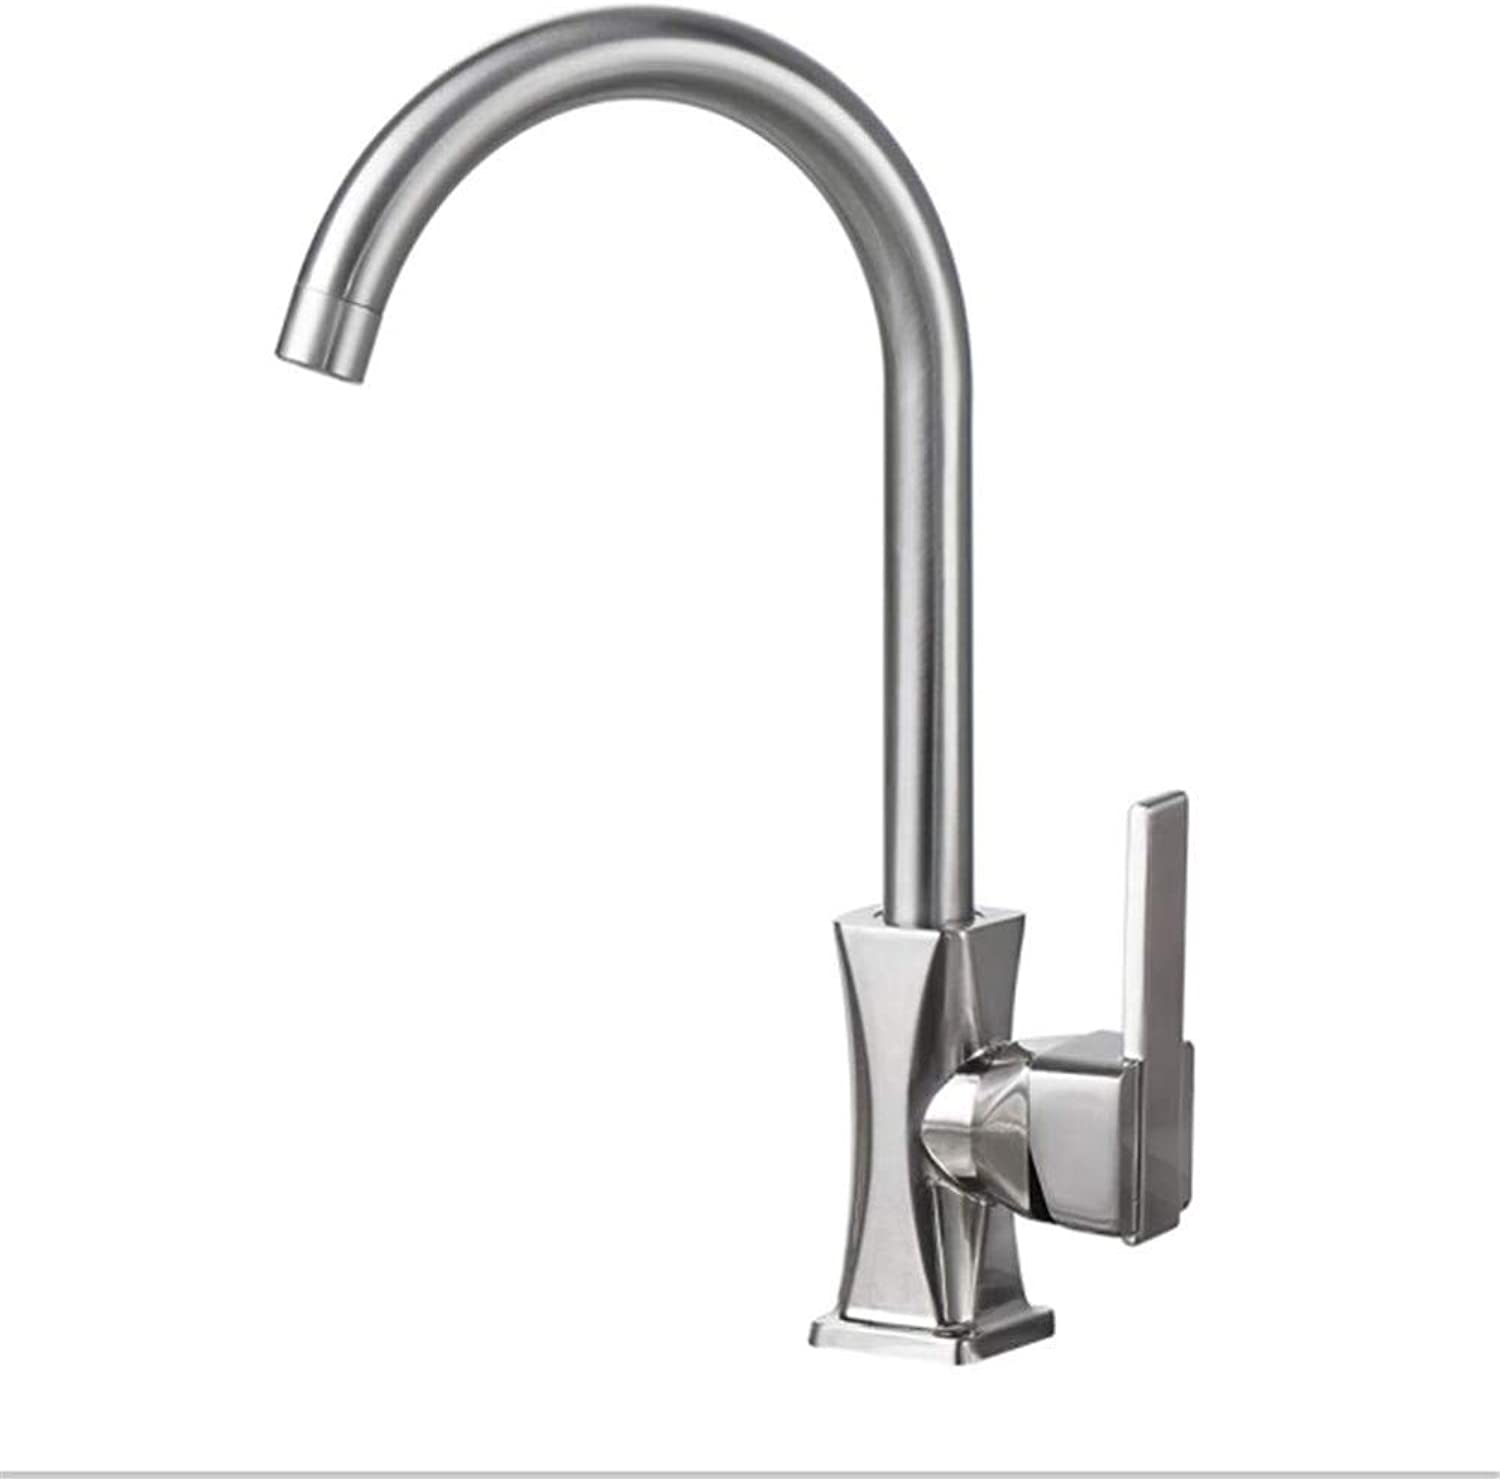 Water Tap Drinking Designer Archkitchen 304 Stainless Steel Faucet Lead-Free Sink Hot and Cold Faucet